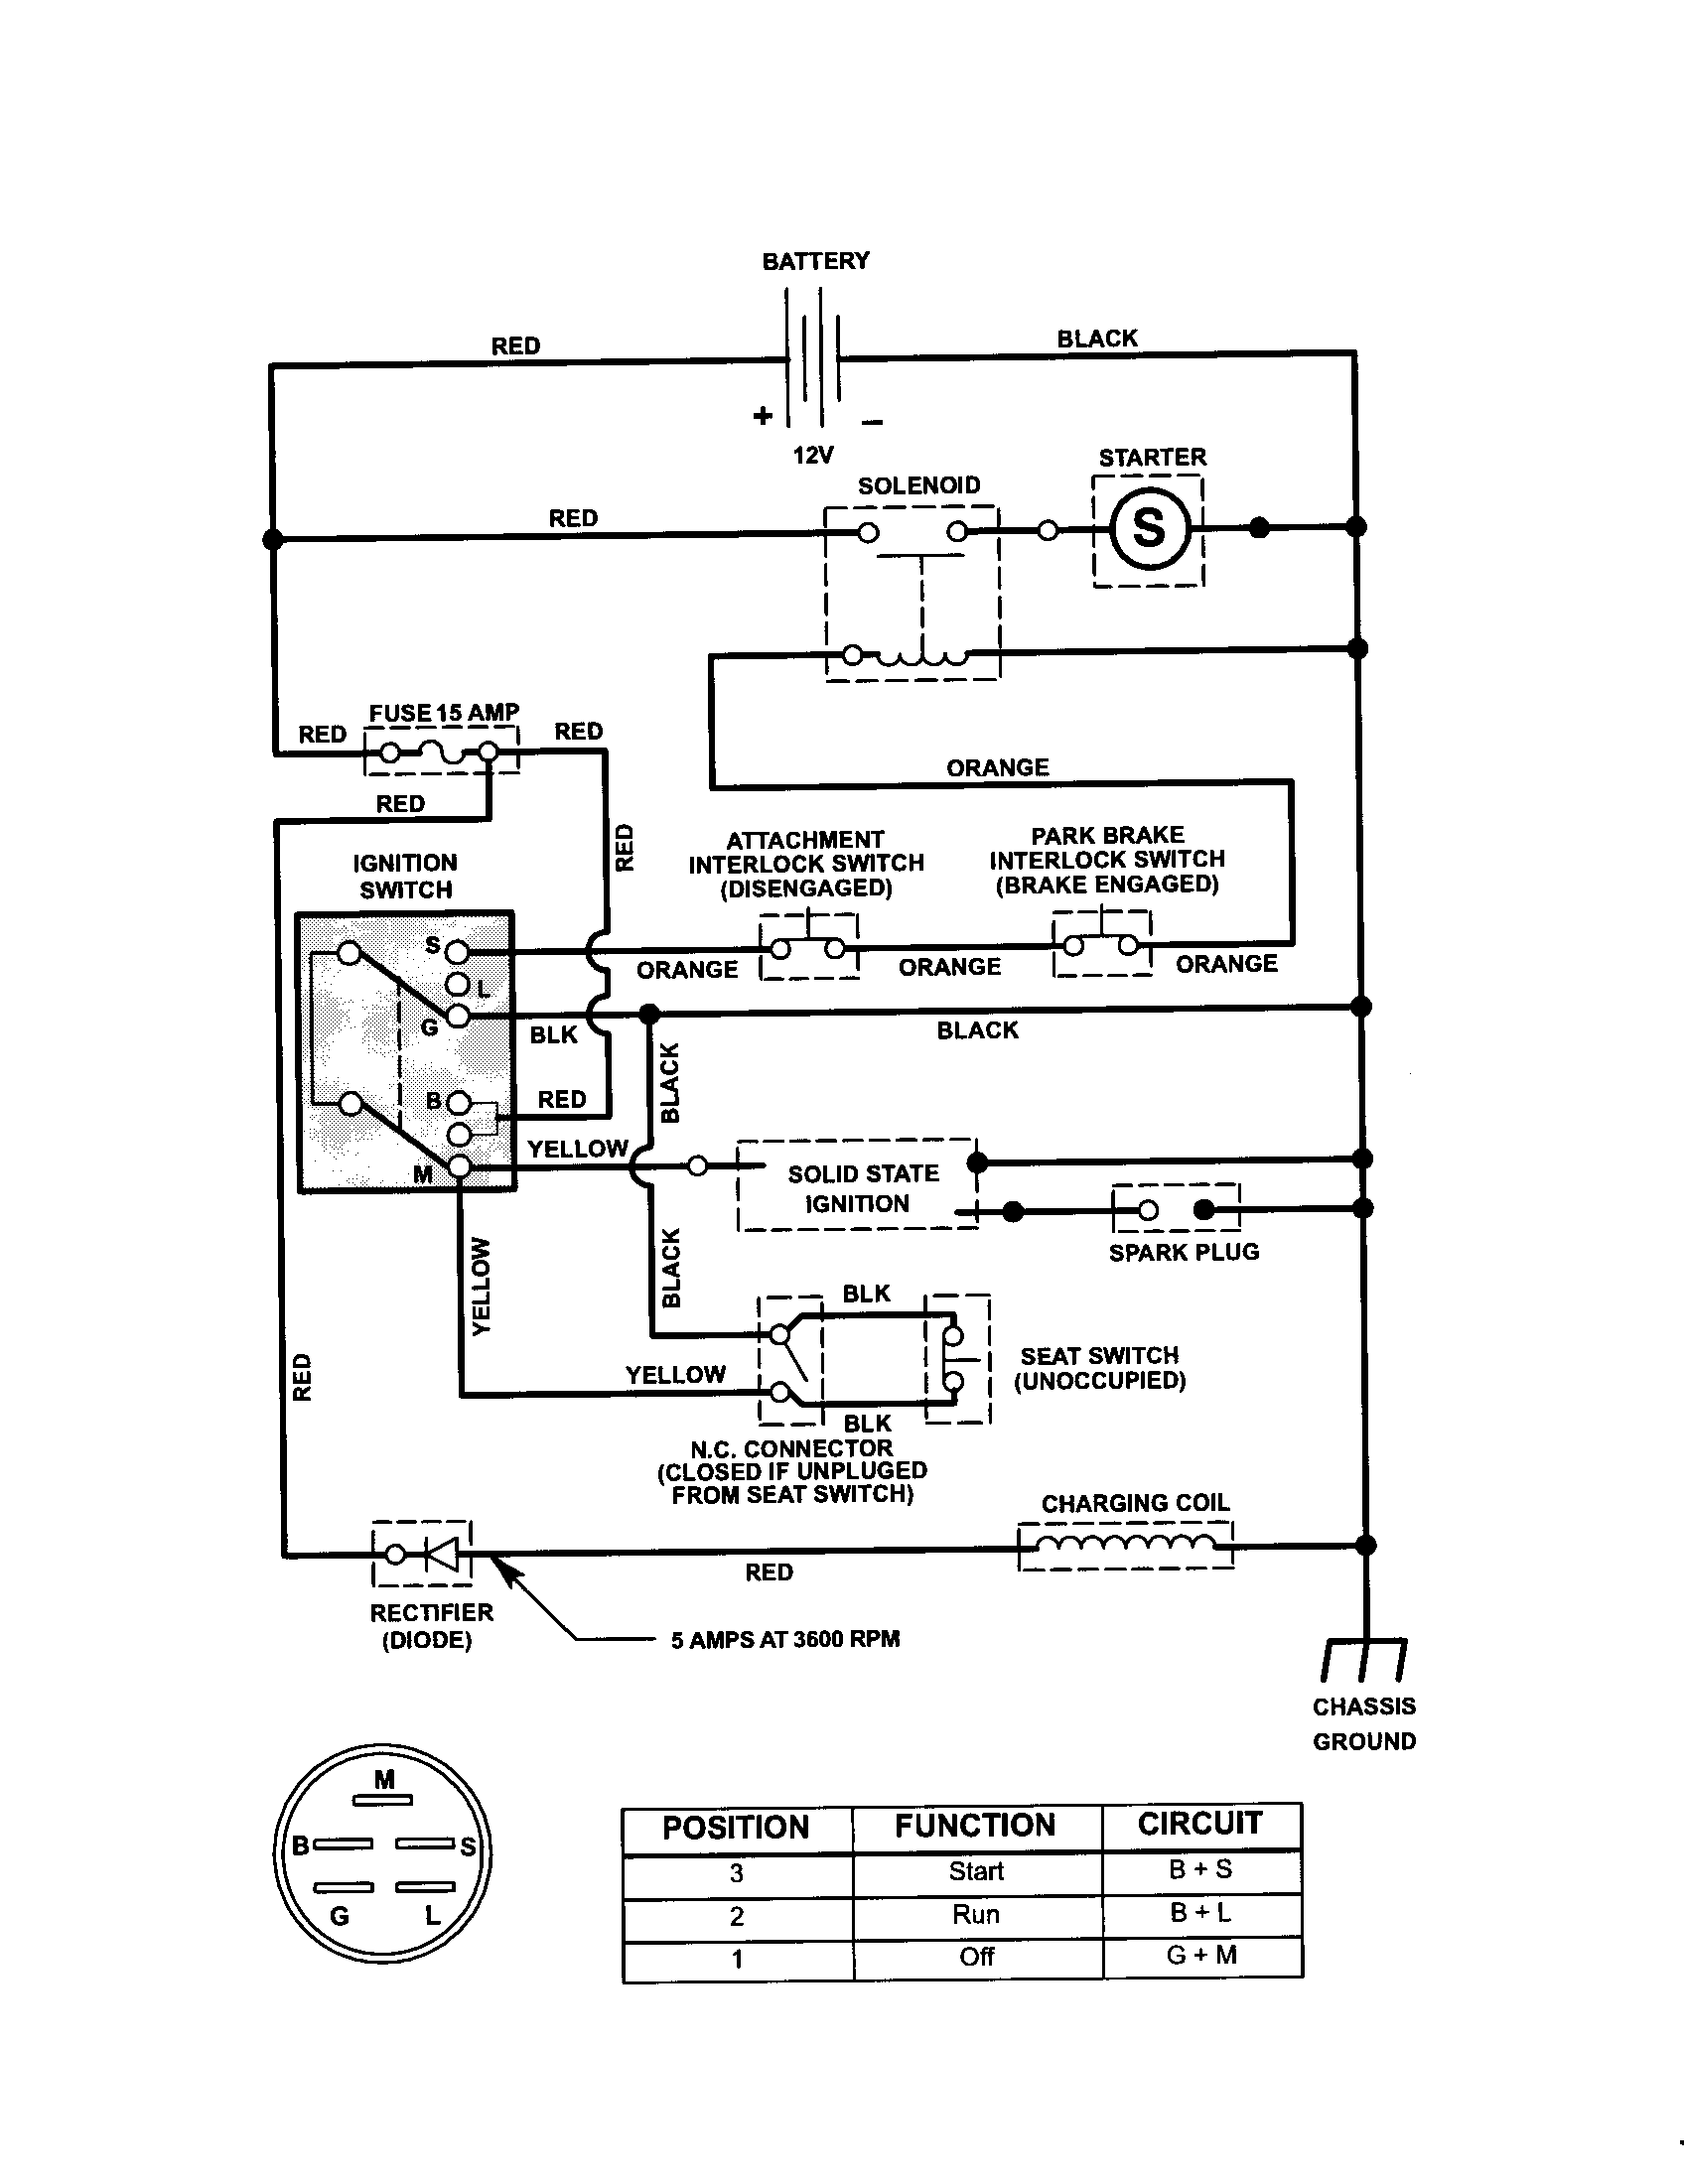 L130 Wiring Diagram - Wiring Diagram 500 on john deere 445 wiring-diagram, john deere m wiring-diagram, john deere d140 wiring diagram, john deere la165 wiring diagram, john deere la140 wiring diagram, john deere 345 kawasaki wiring diagrams, john deere la115 wiring diagram, john deere lx277 wiring-diagram, john deere la125 wiring diagram, john deere 212 wiring-diagram, john deere wiring harness diagram, john deere 322 wiring-diagram, john deere d170 wiring diagram, john deere l120 mower deck parts diagram, john deere gt235 wiring-diagram, john deere mower wiring diagram, john deere la120 wiring diagram, john deere electrical diagrams, john deere voltage regulator wiring diagram, john deere 5103 wiring-diagram,